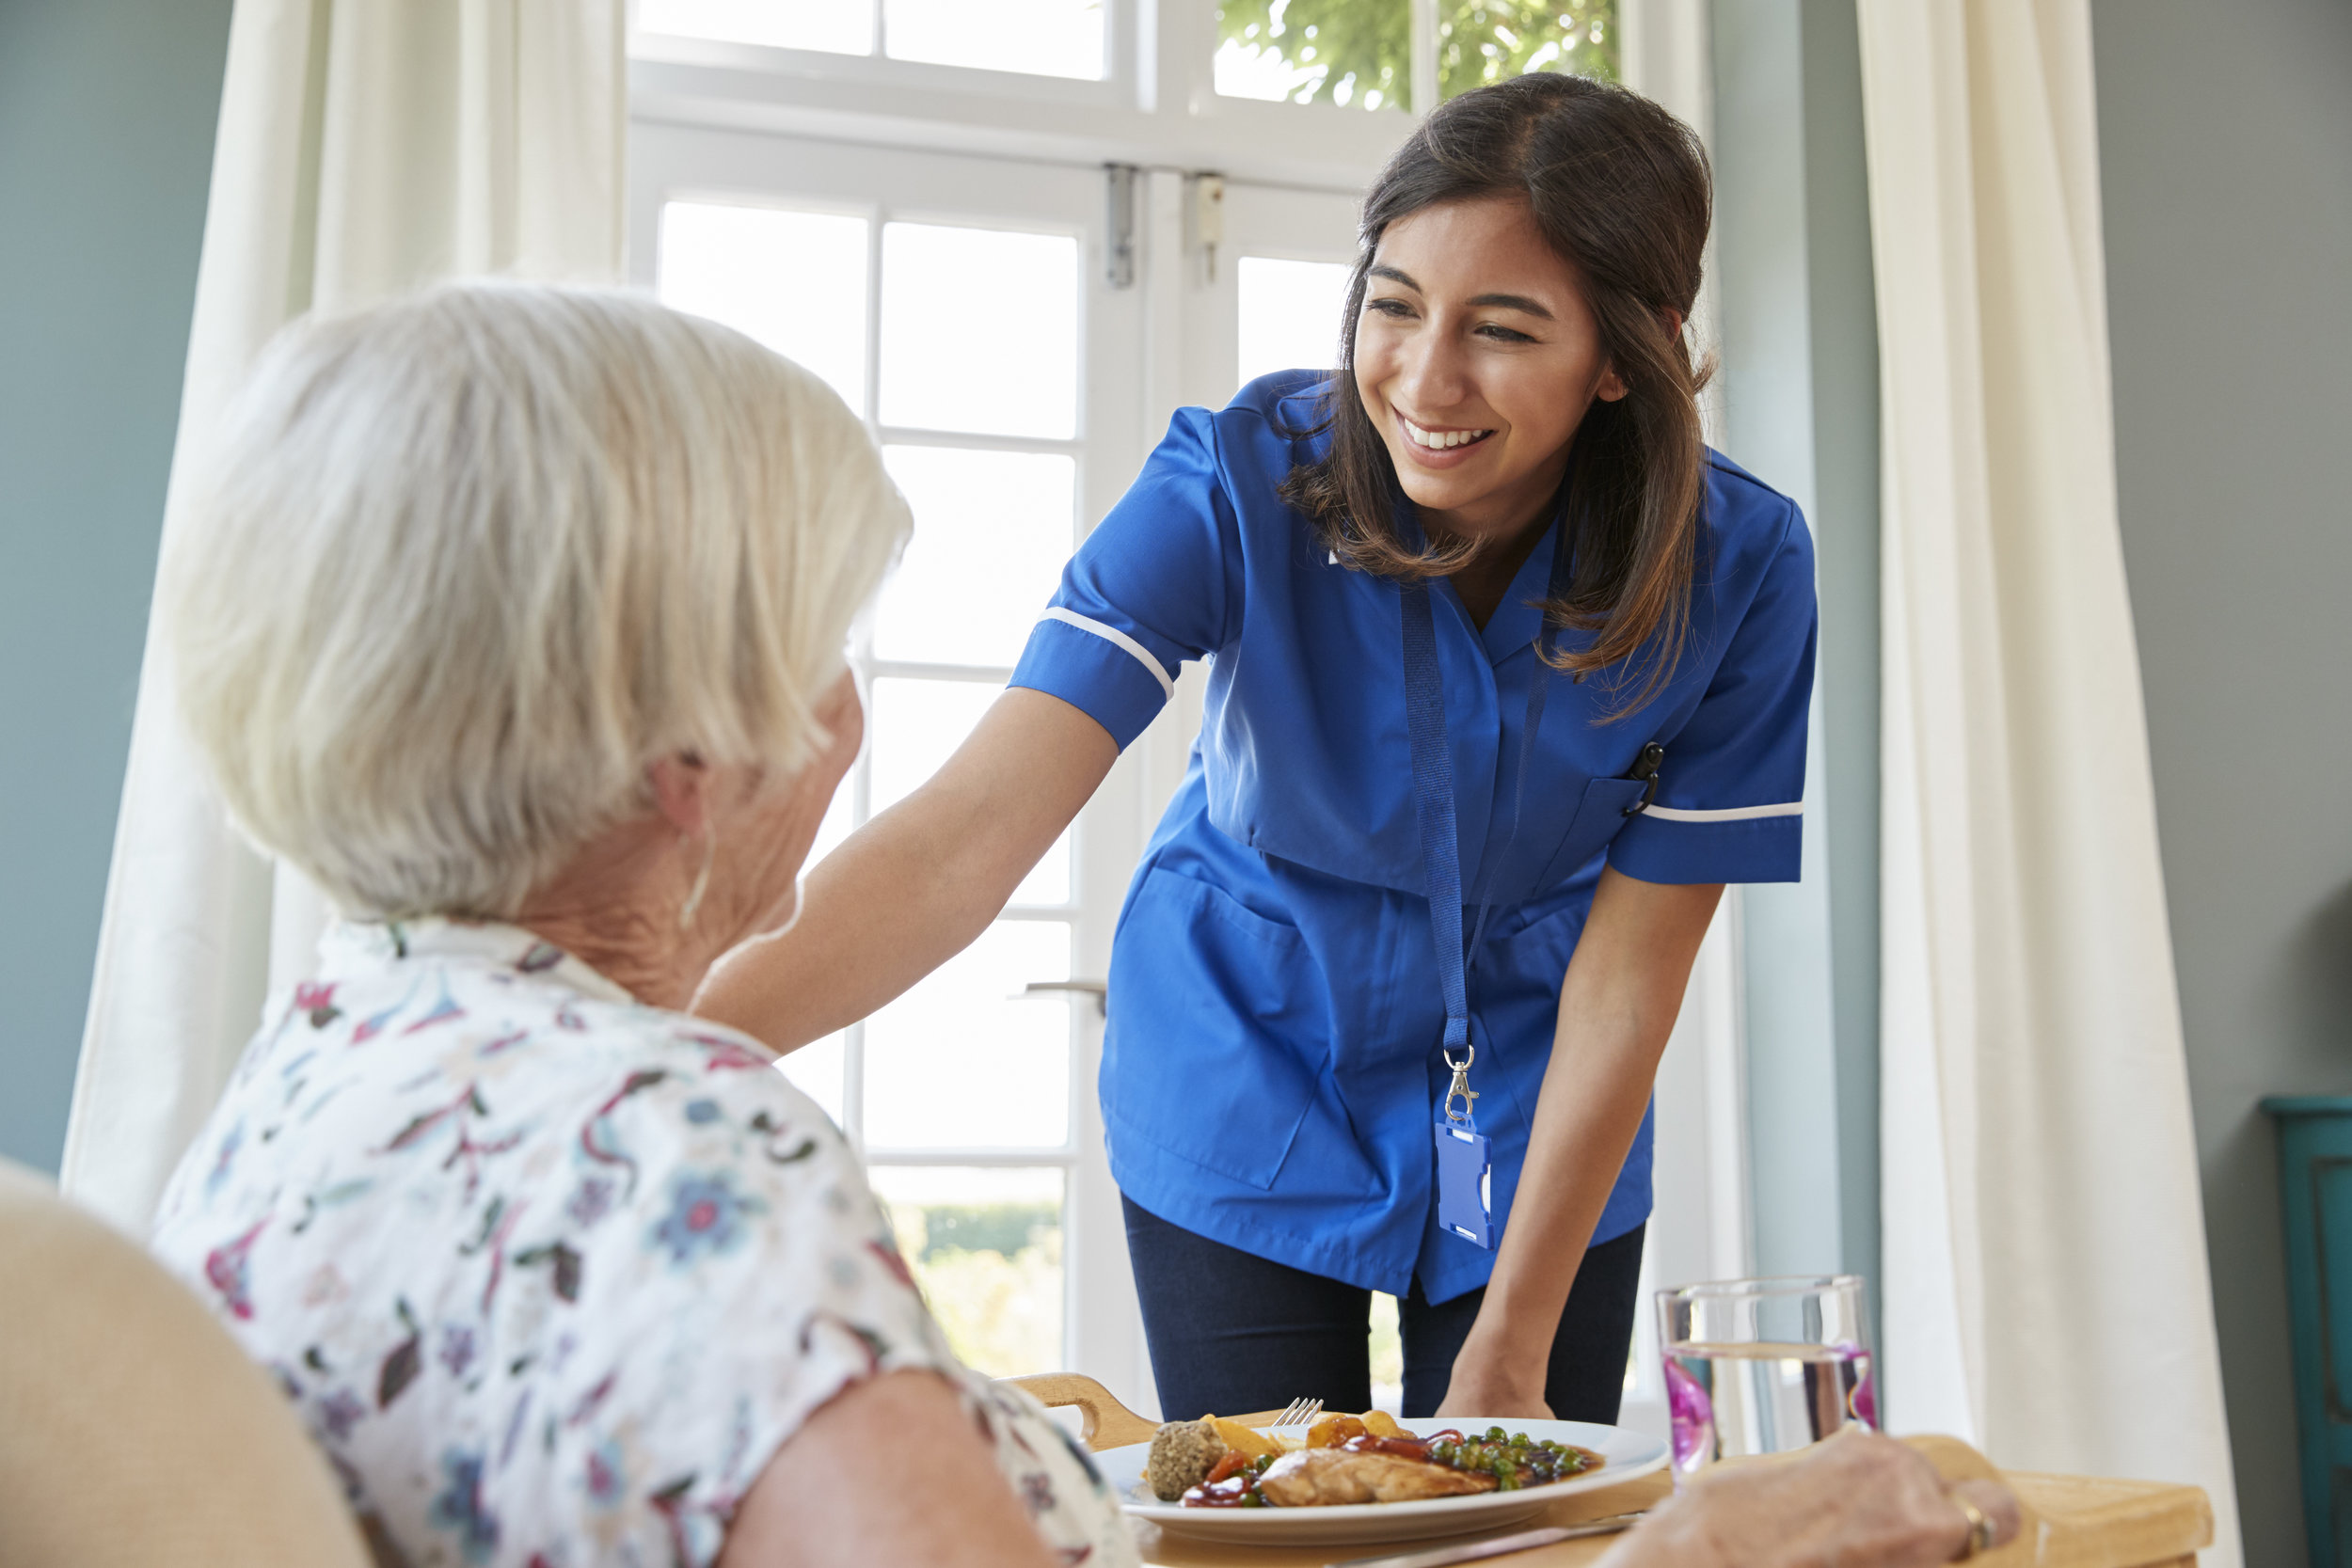 care-nurse-serving-dinner-to-a-senior-woman-at-PQHJS4A.jpg